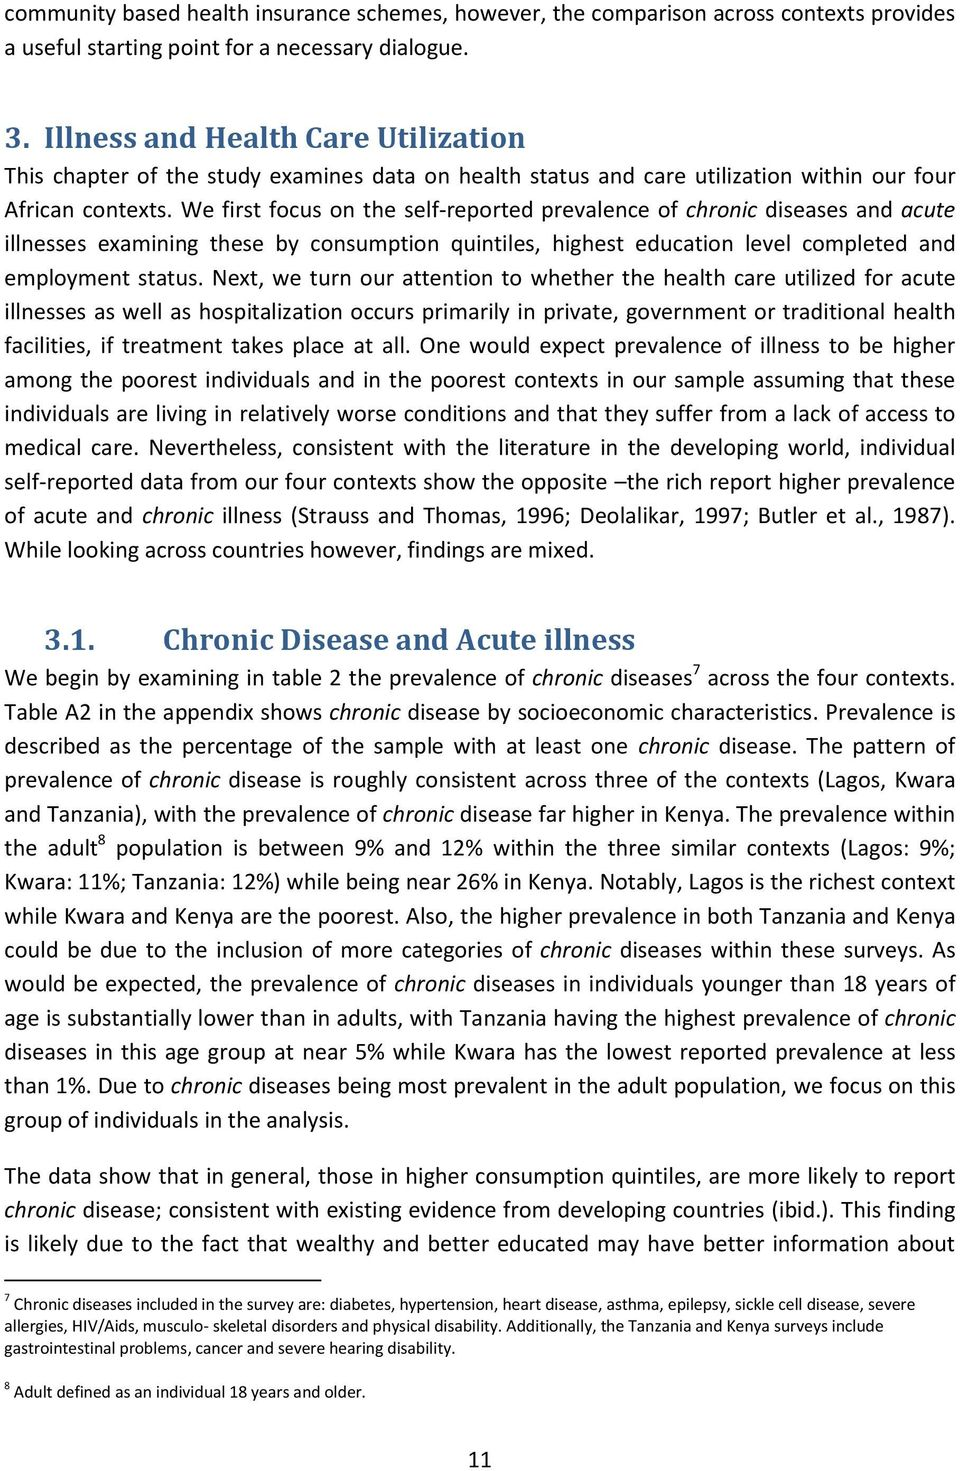 We first focus on the self-reported prevalence of chronic diseases and acute illnesses examining these by consumption quintiles, highest education level completed and employment status.